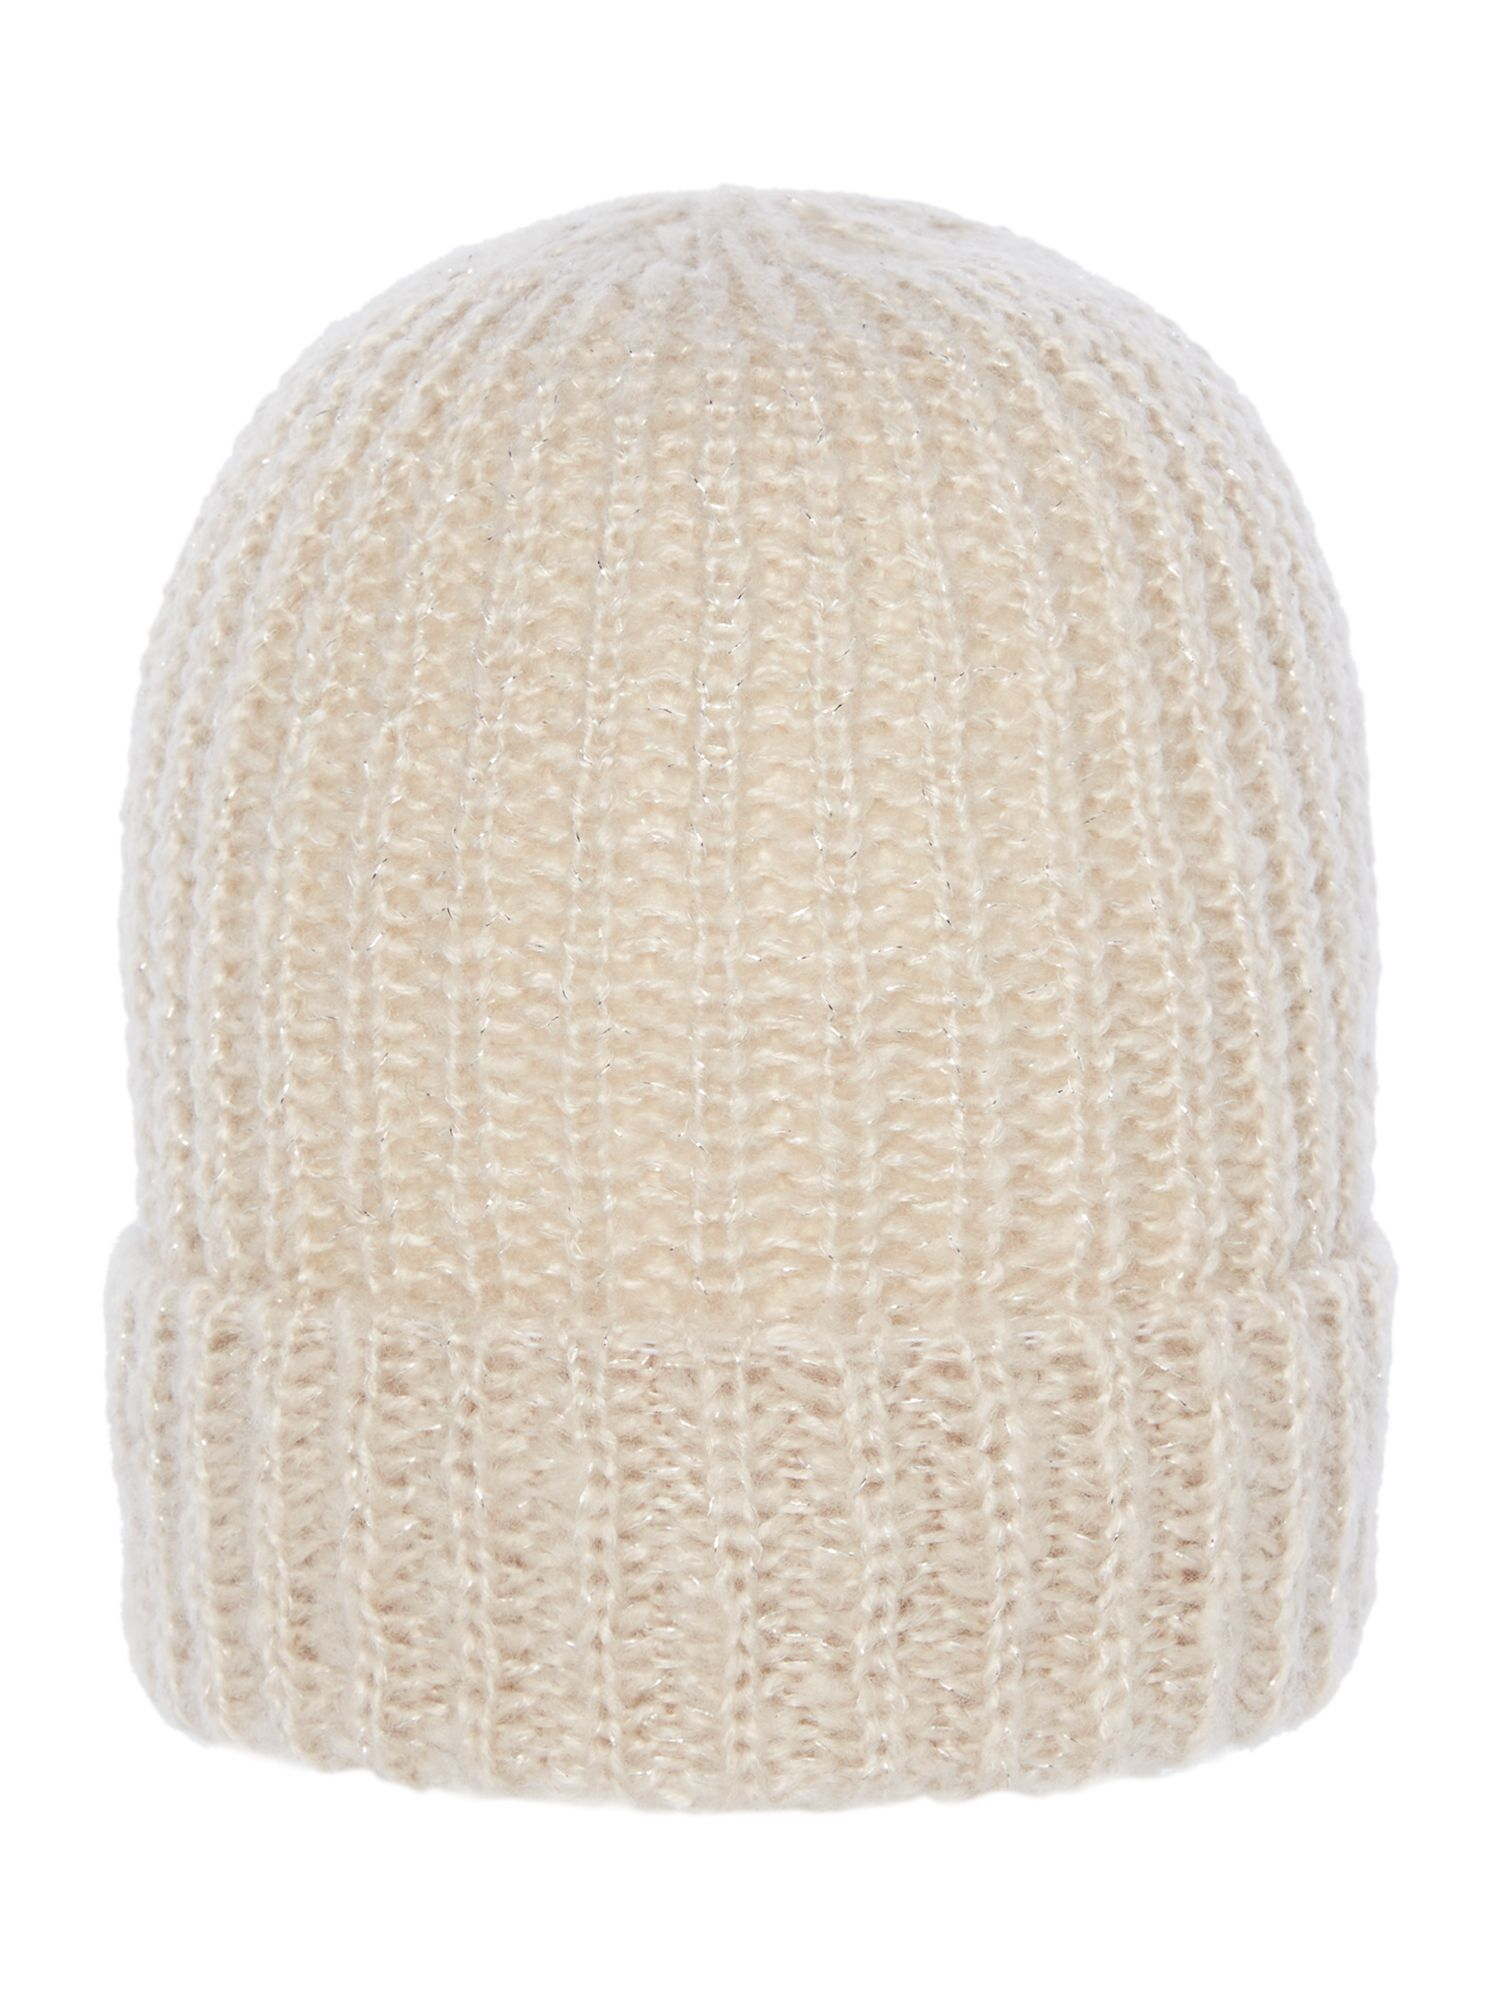 Label Lab Hats Layla rib knitted hat, Cream